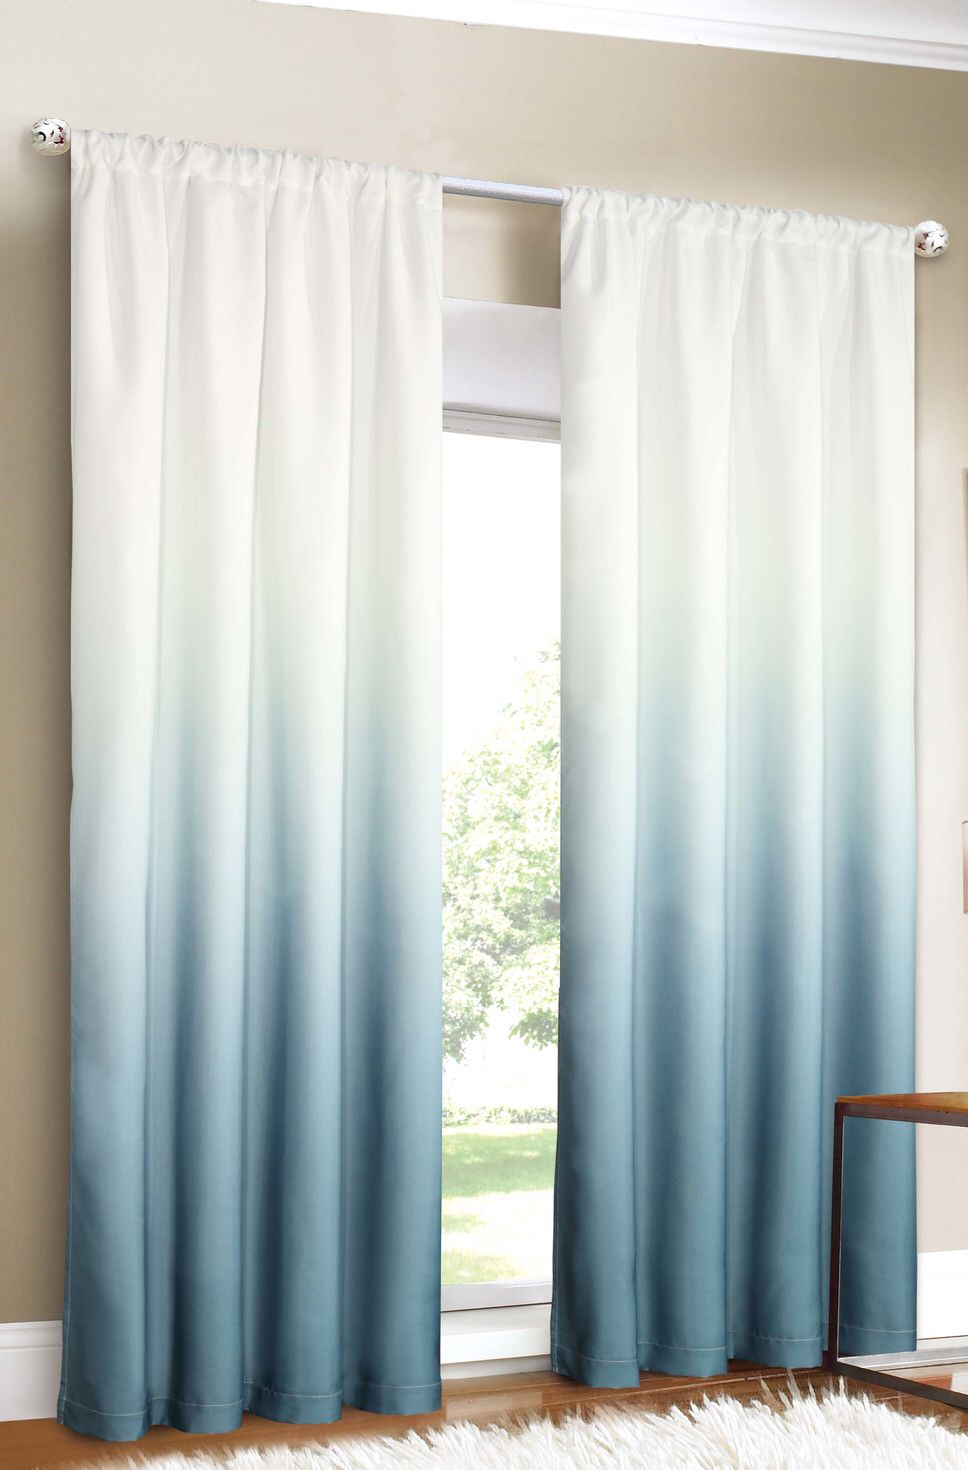 Better Blue Ombre Curtain With Images Ombre Curtains Panel